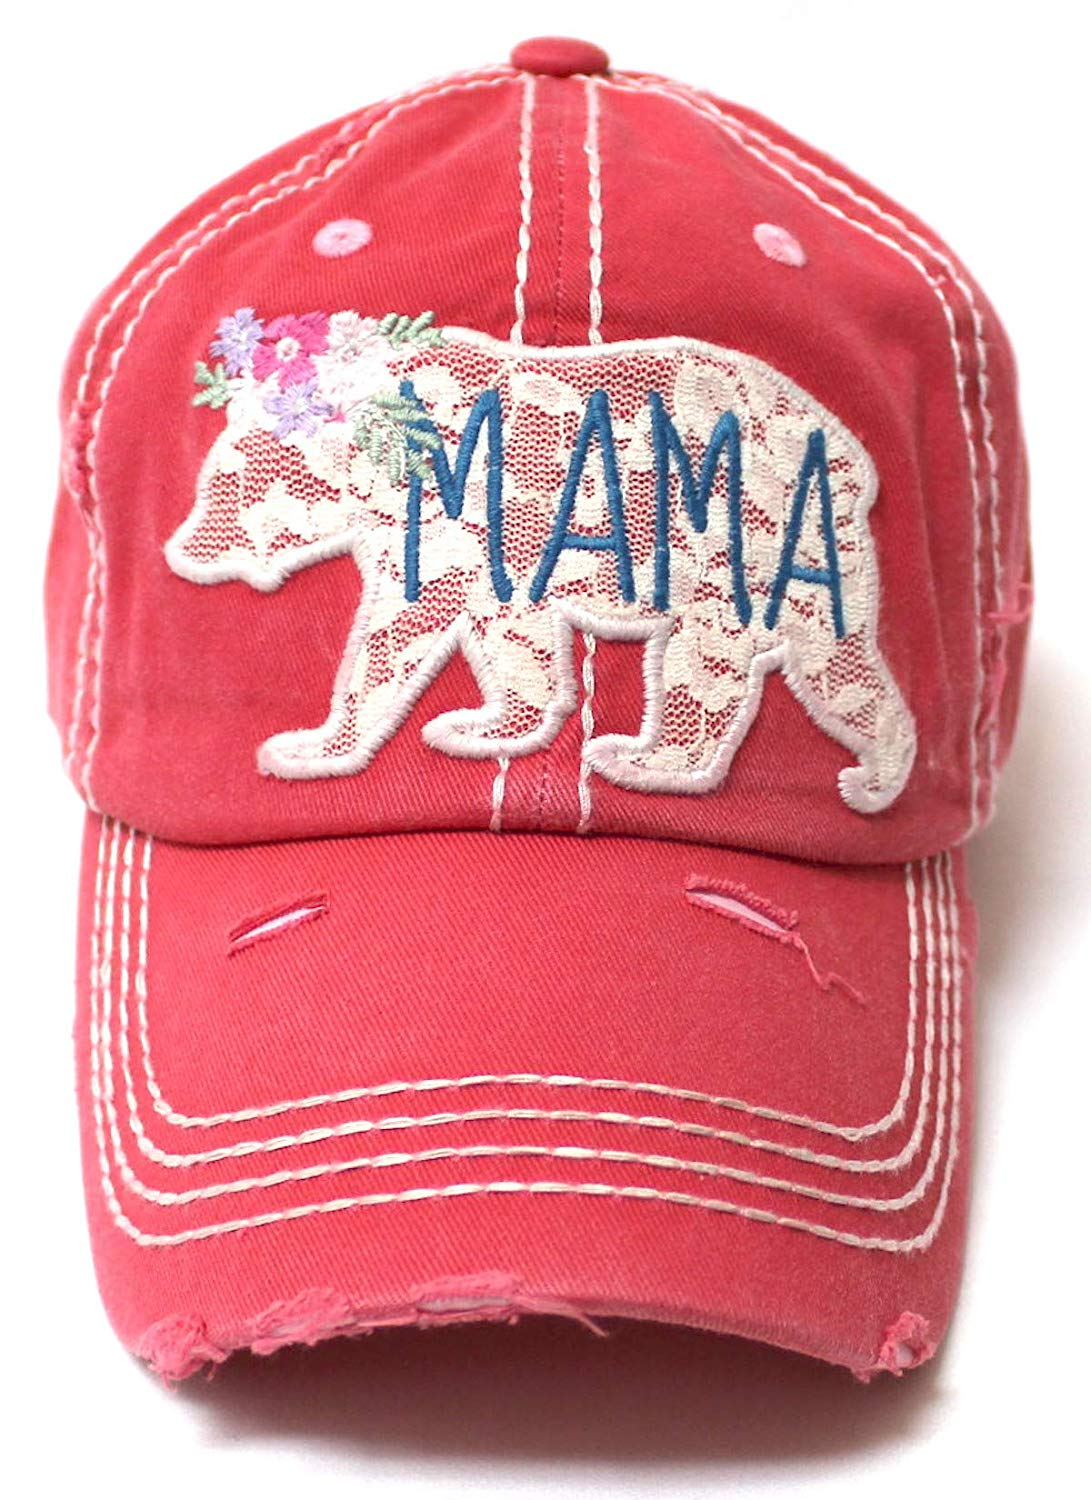 Women's Vintage Mama Graphic Cap, Spring Floral Lace Bear Embroidery, Rose Pink - Caps 'N Vintage